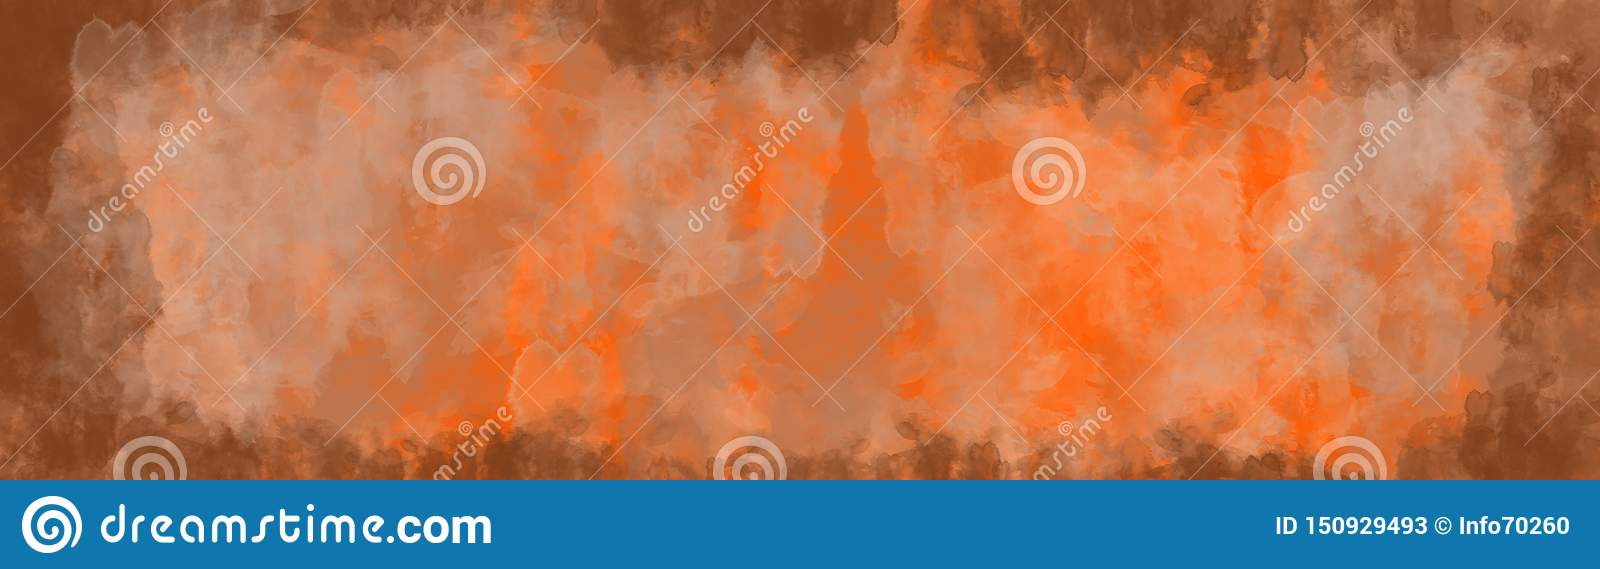 Abstract background, vintage texture with border